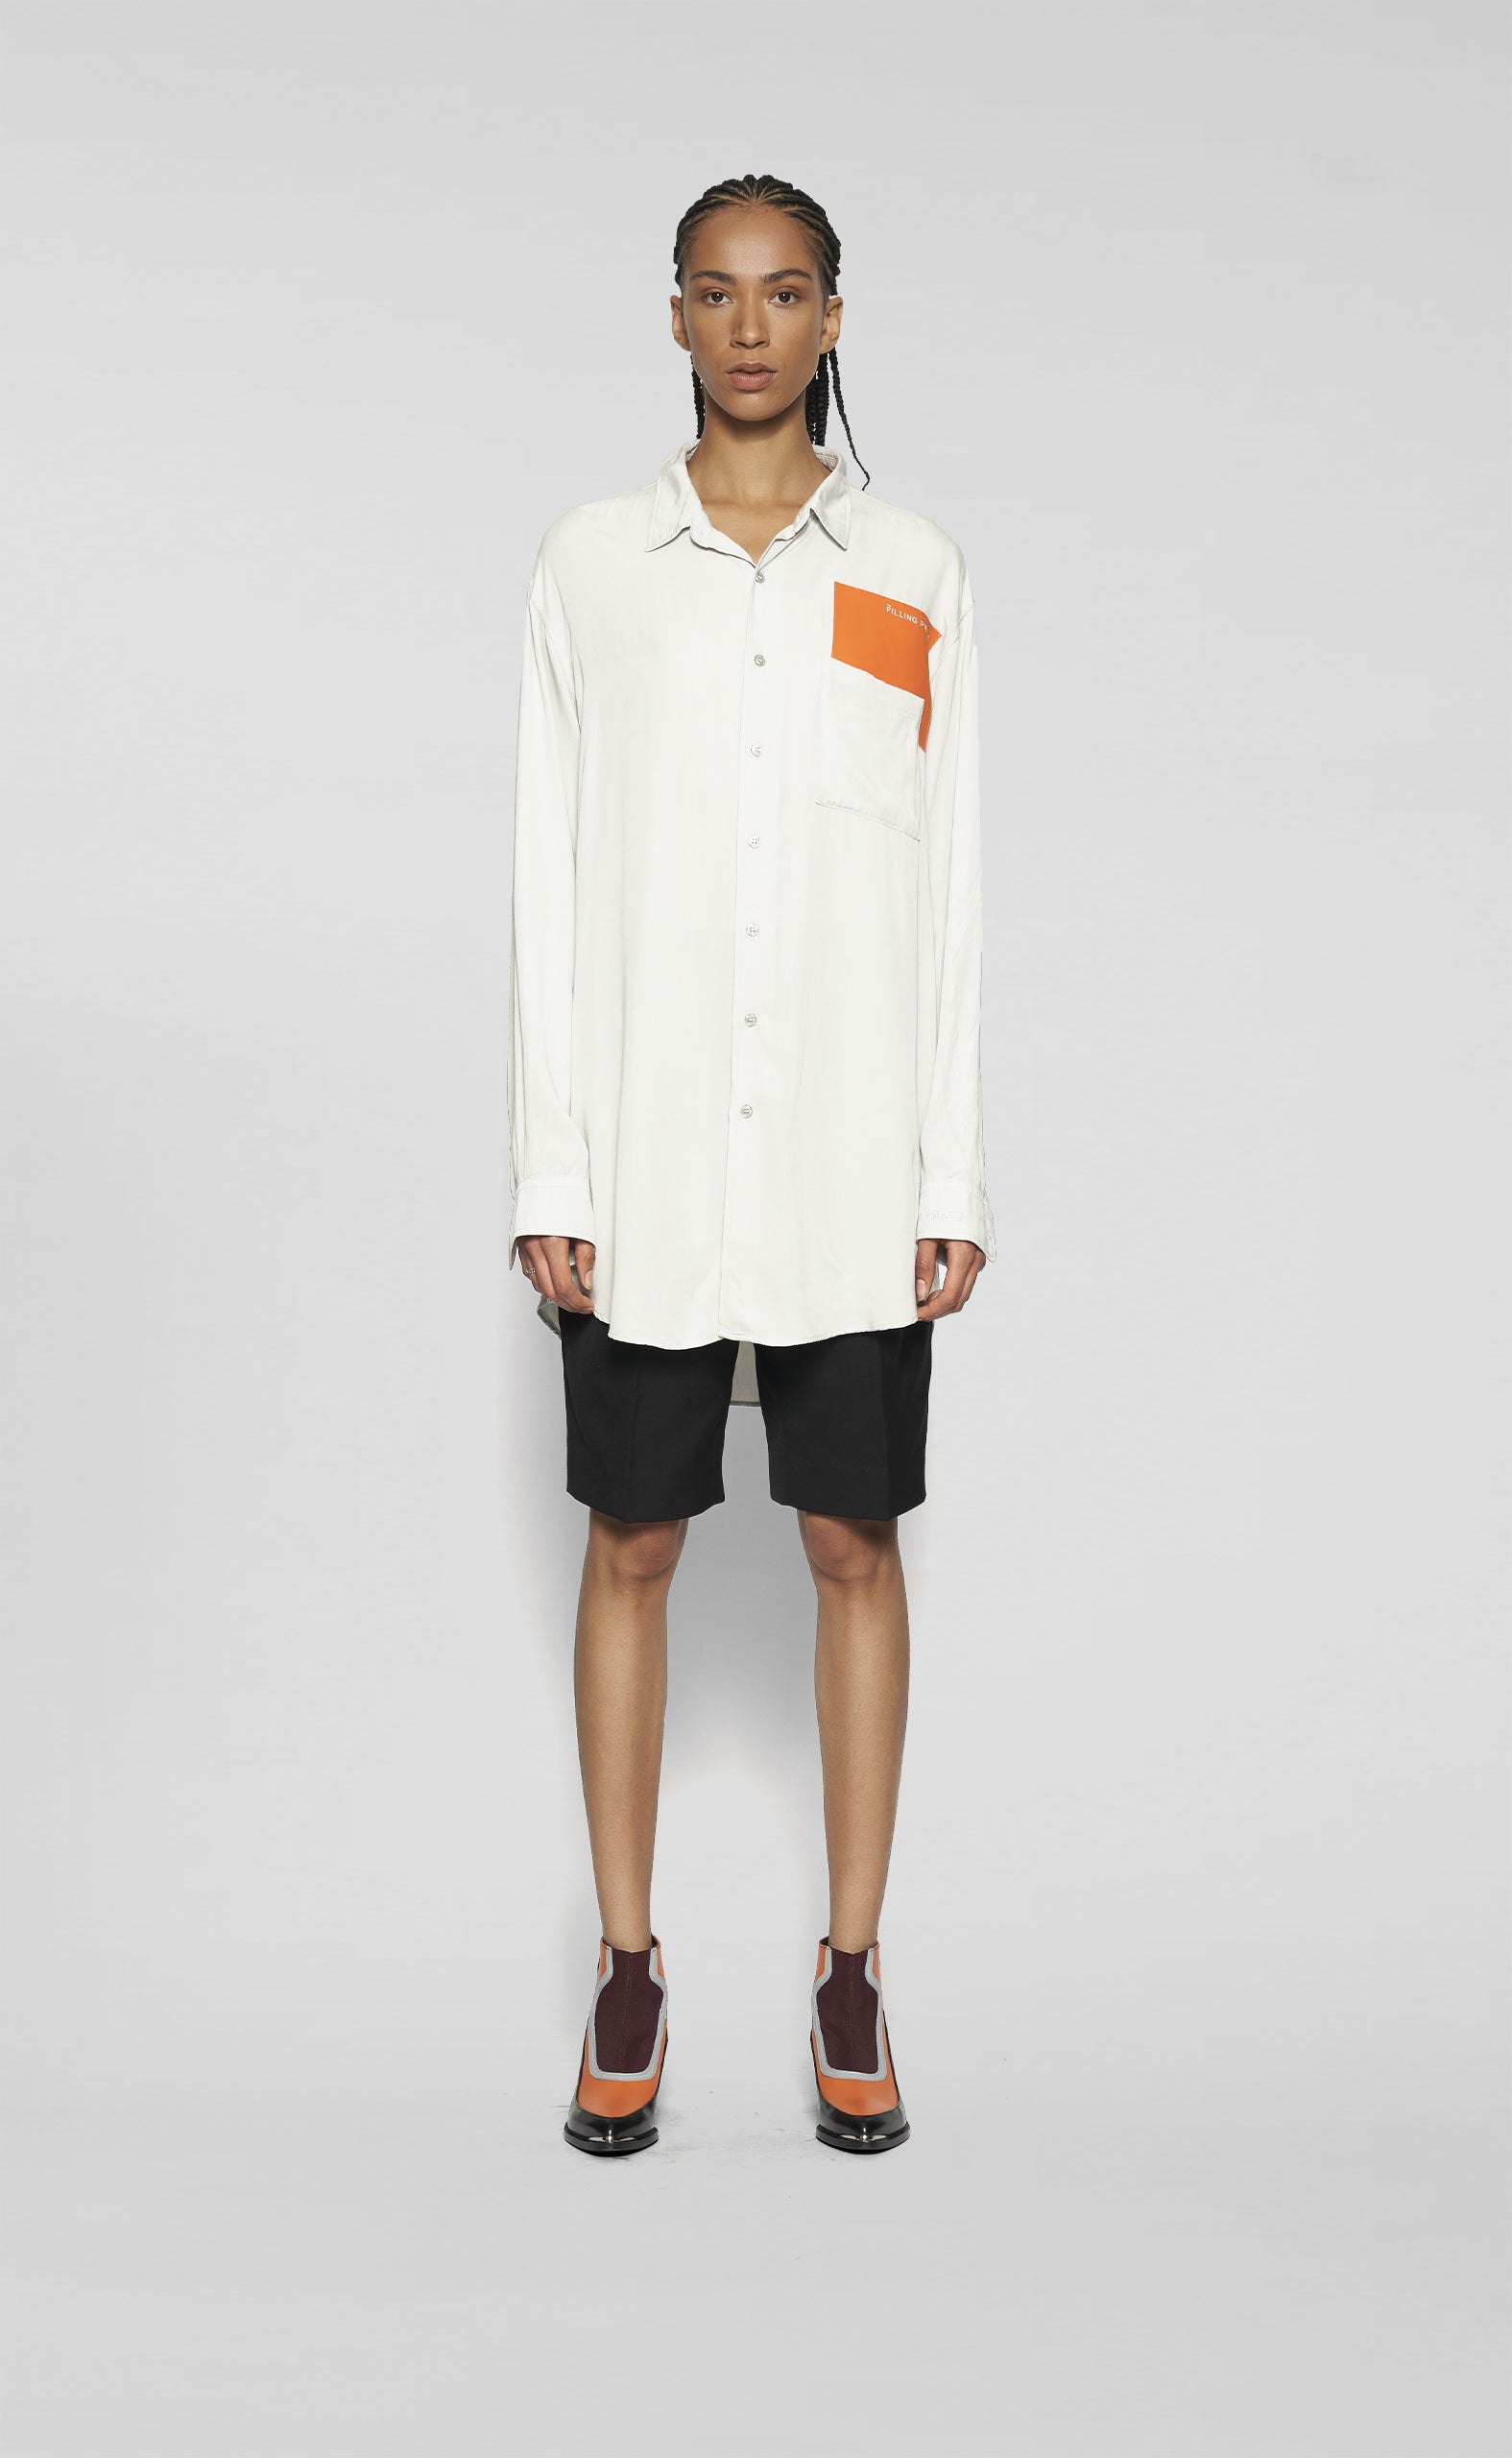 Shirt CEO White - women